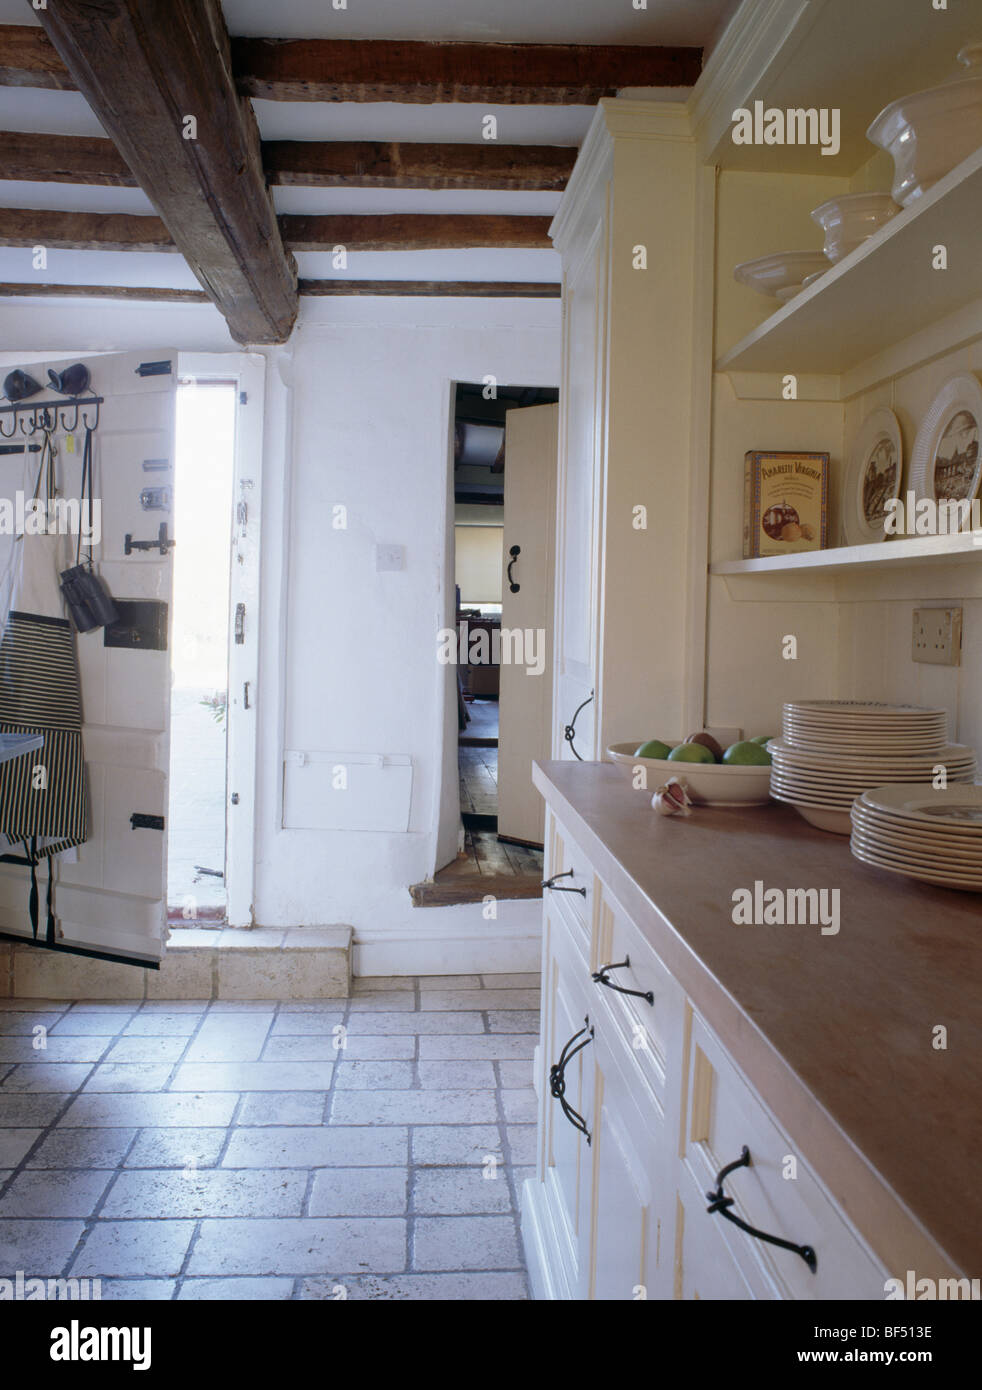 Limestone Floor Kitchen Stock Photos & Limestone Floor Kitchen Stock ...